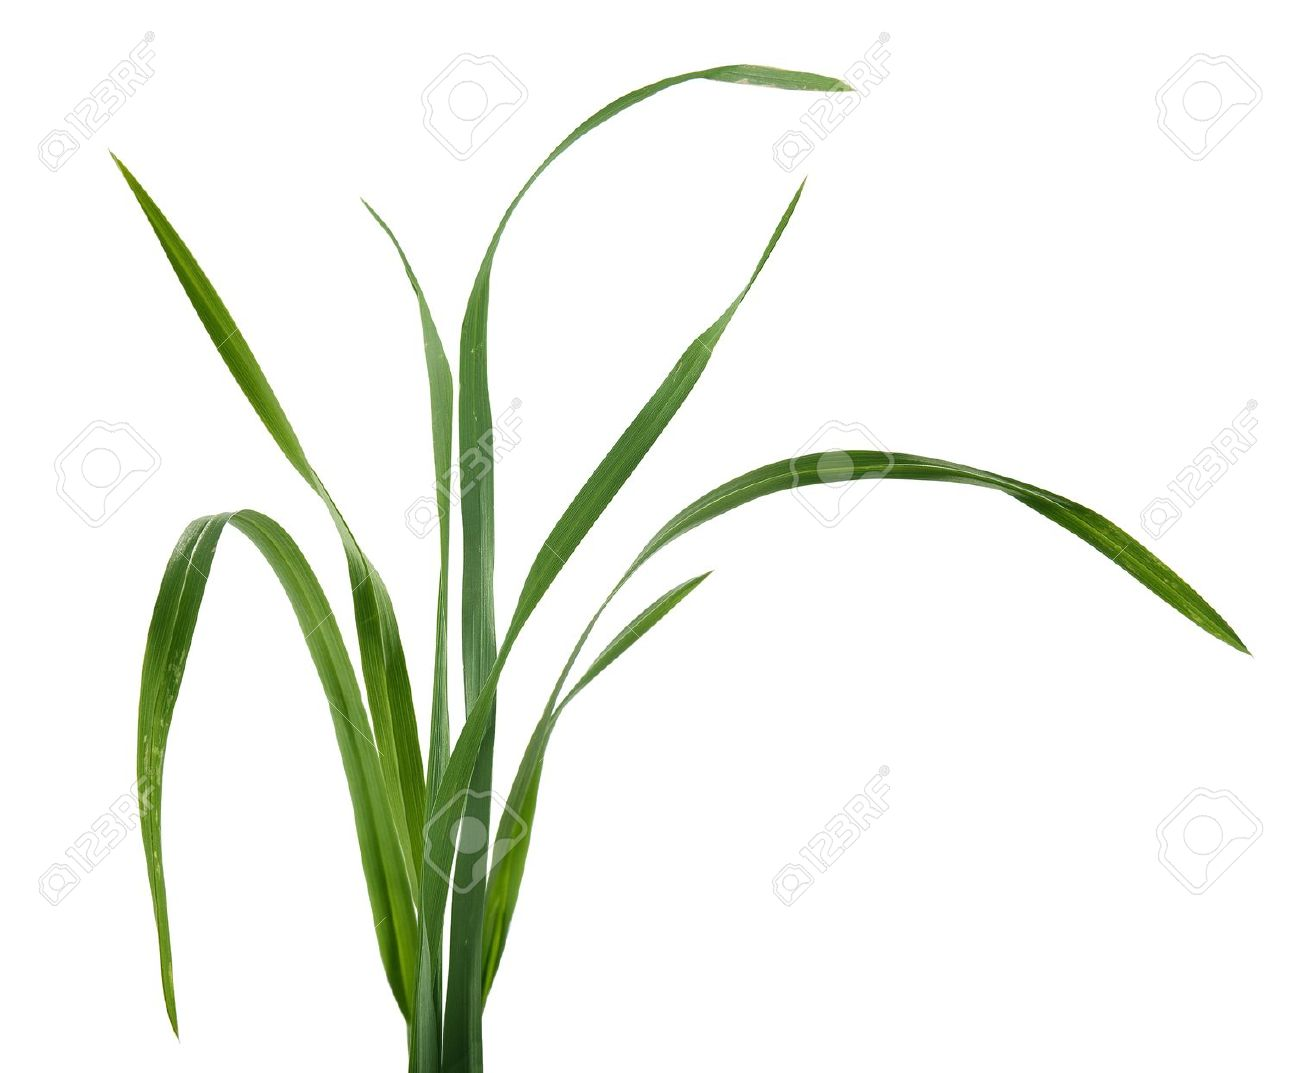 Some Isolated Fresh Green Blades Of Grass Stock Photo, Picture And.